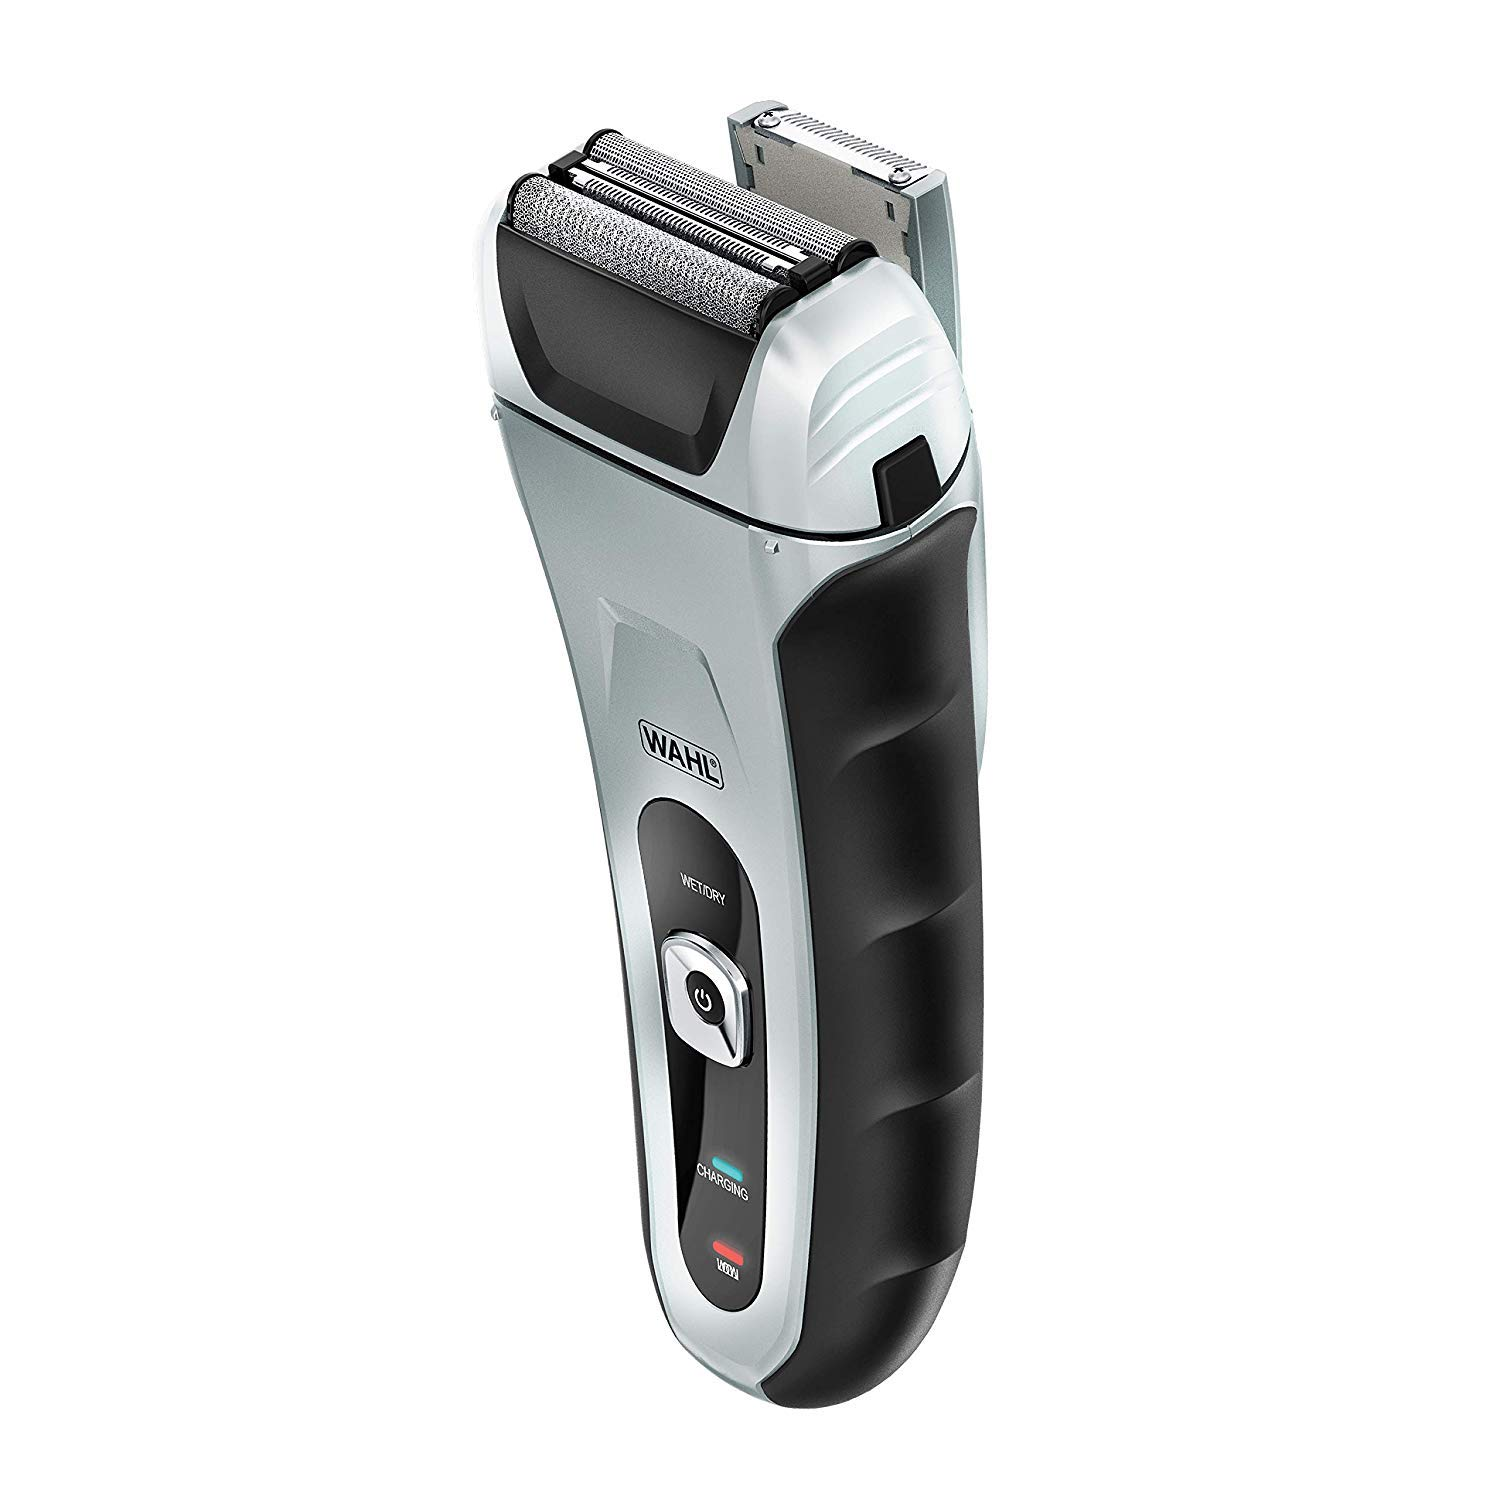 Wahl Speed Shave Rechargeable Wet Dry Waterproof Facial Hair Shaver with Speedflex Precision Foils 7069